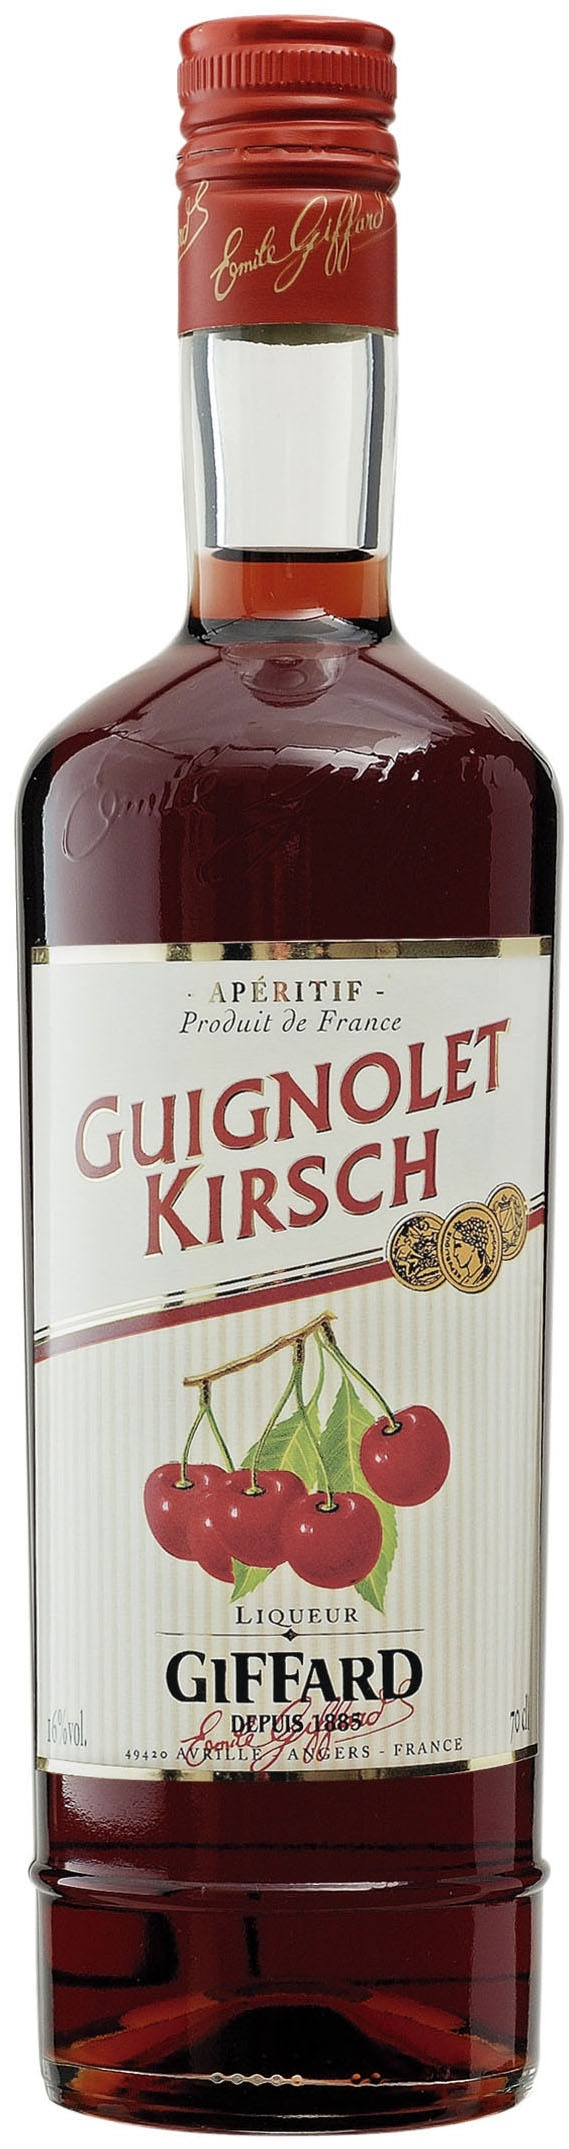 """Guignolet Kirsch : natural aperitif produced according to traditional manufacturing methods : maceration into alcohol of """"Griottes Montmorency"""" cherries and darker and sweeter cherries. A touch of kirsch is then added."""